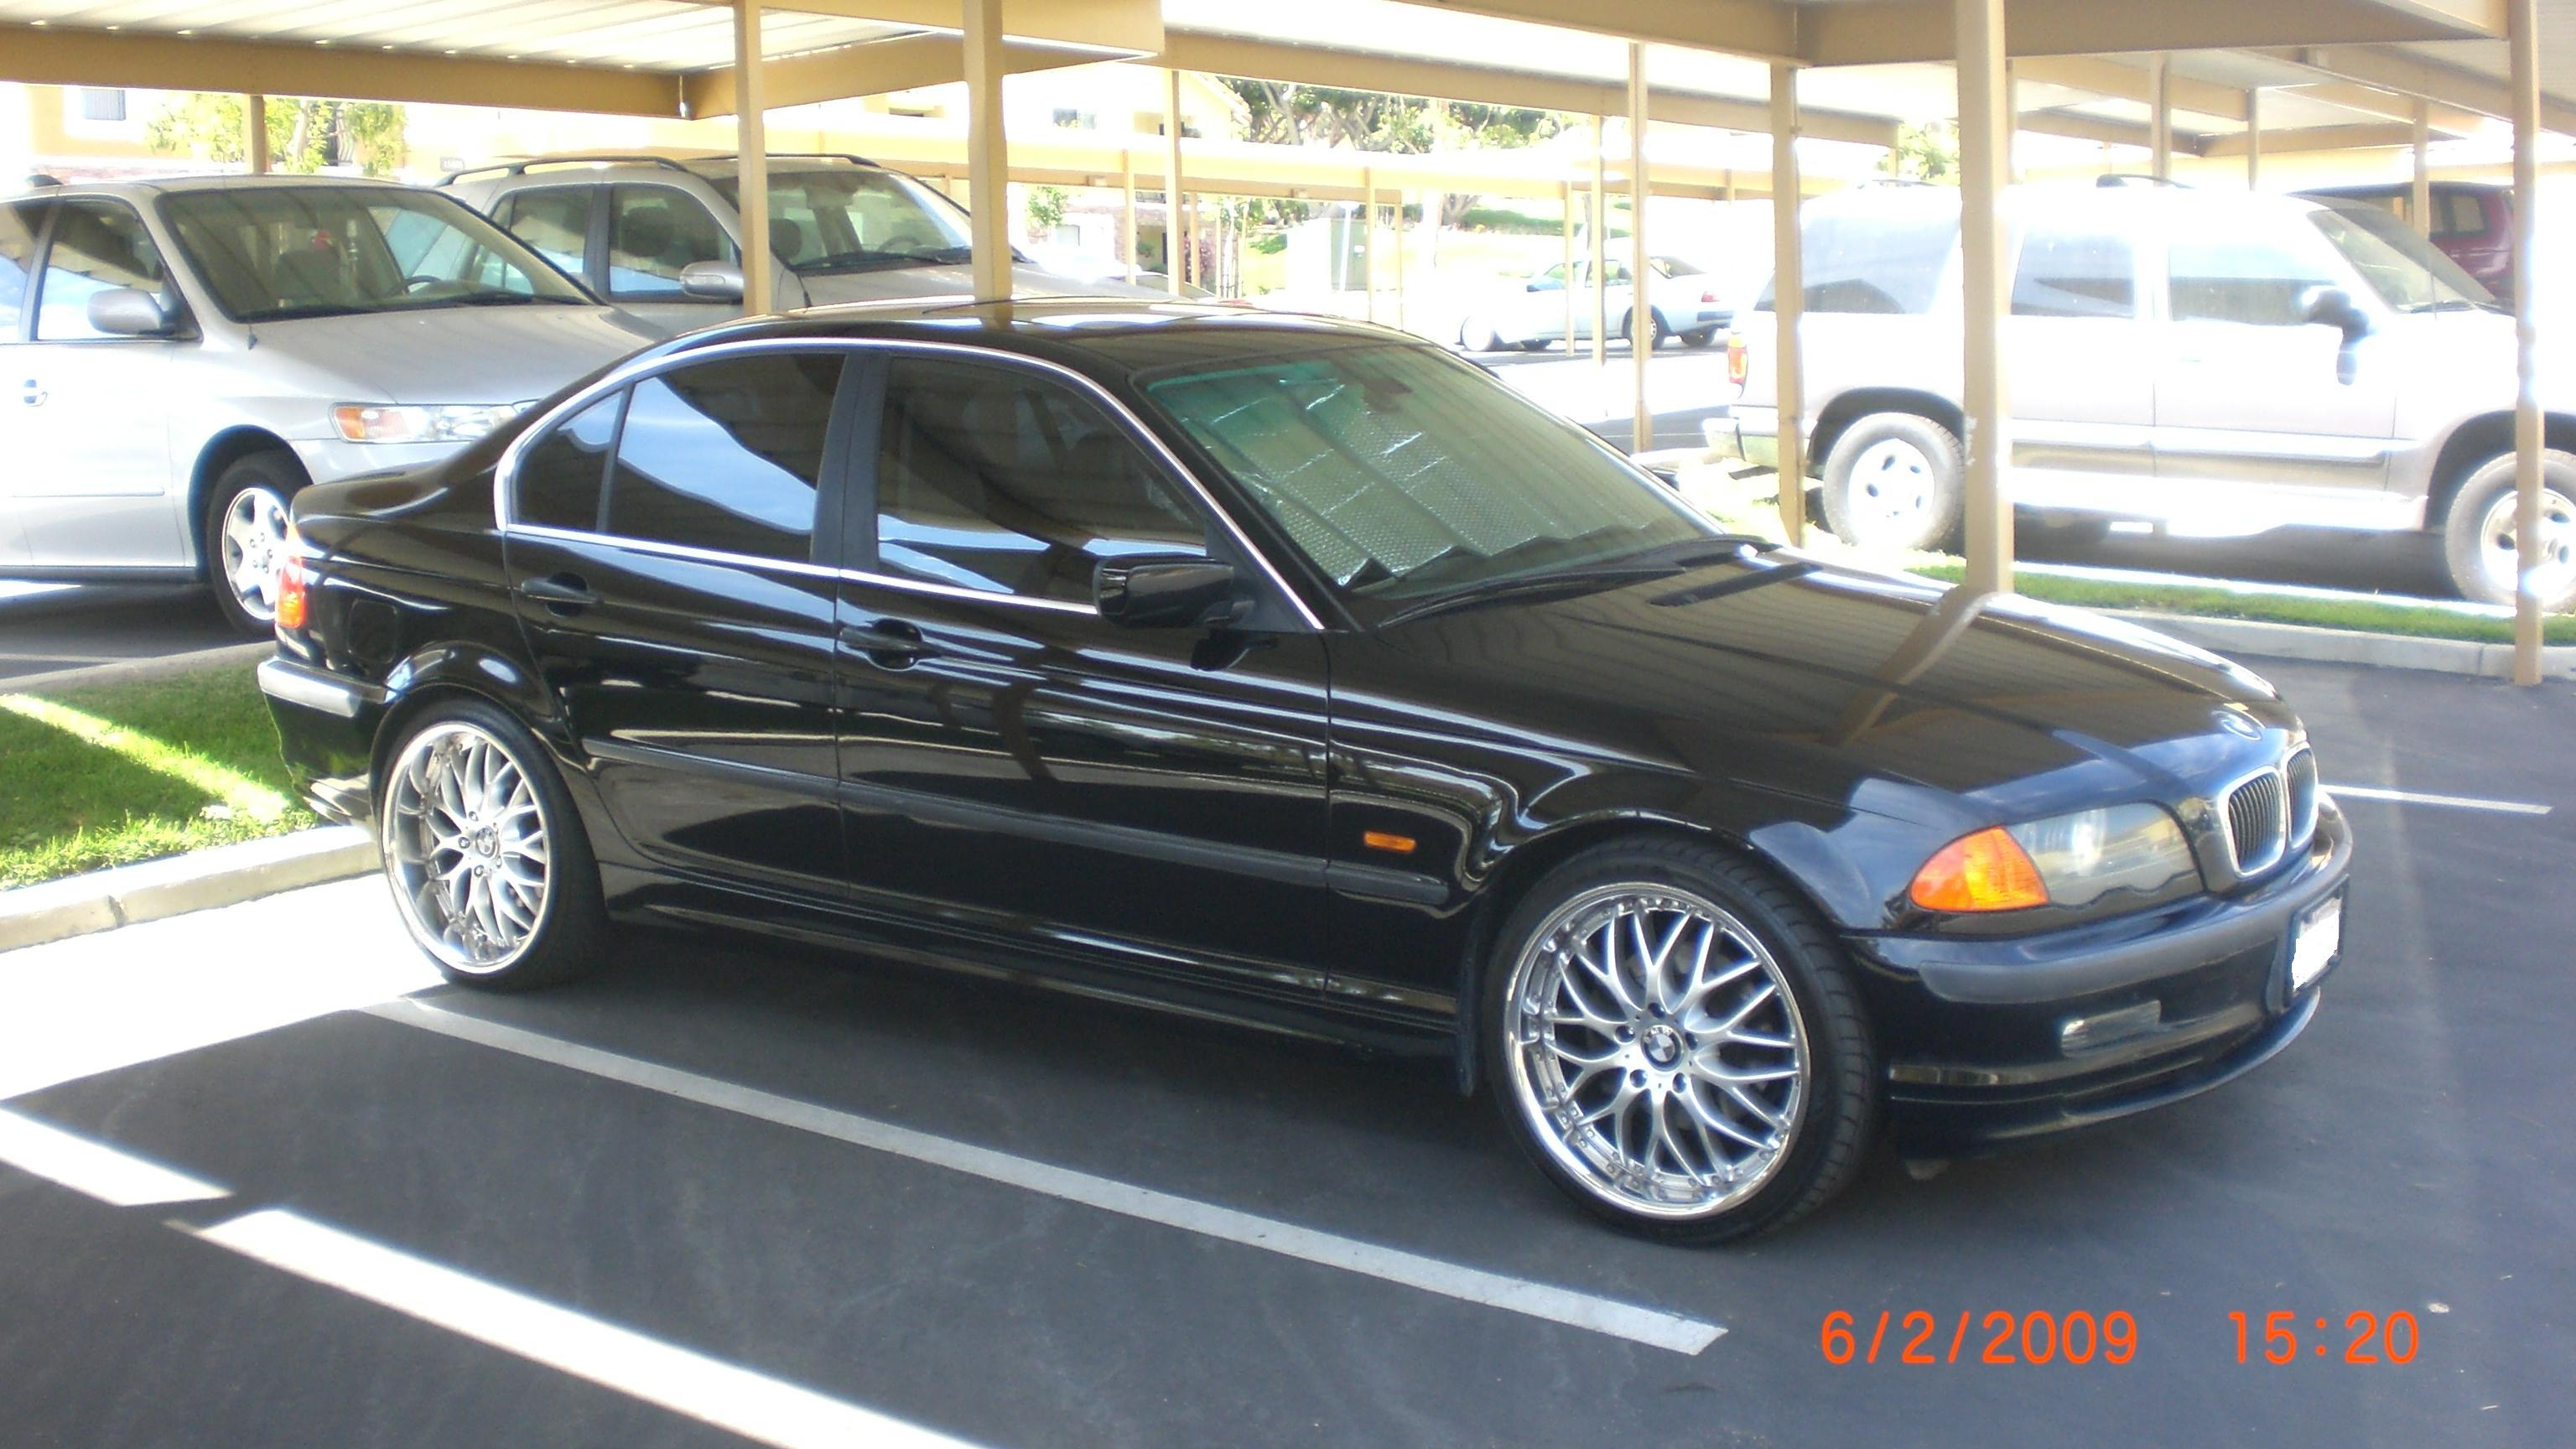 328i e46 1999 bmw 3 series specs photos modification info at cardomain. Black Bedroom Furniture Sets. Home Design Ideas